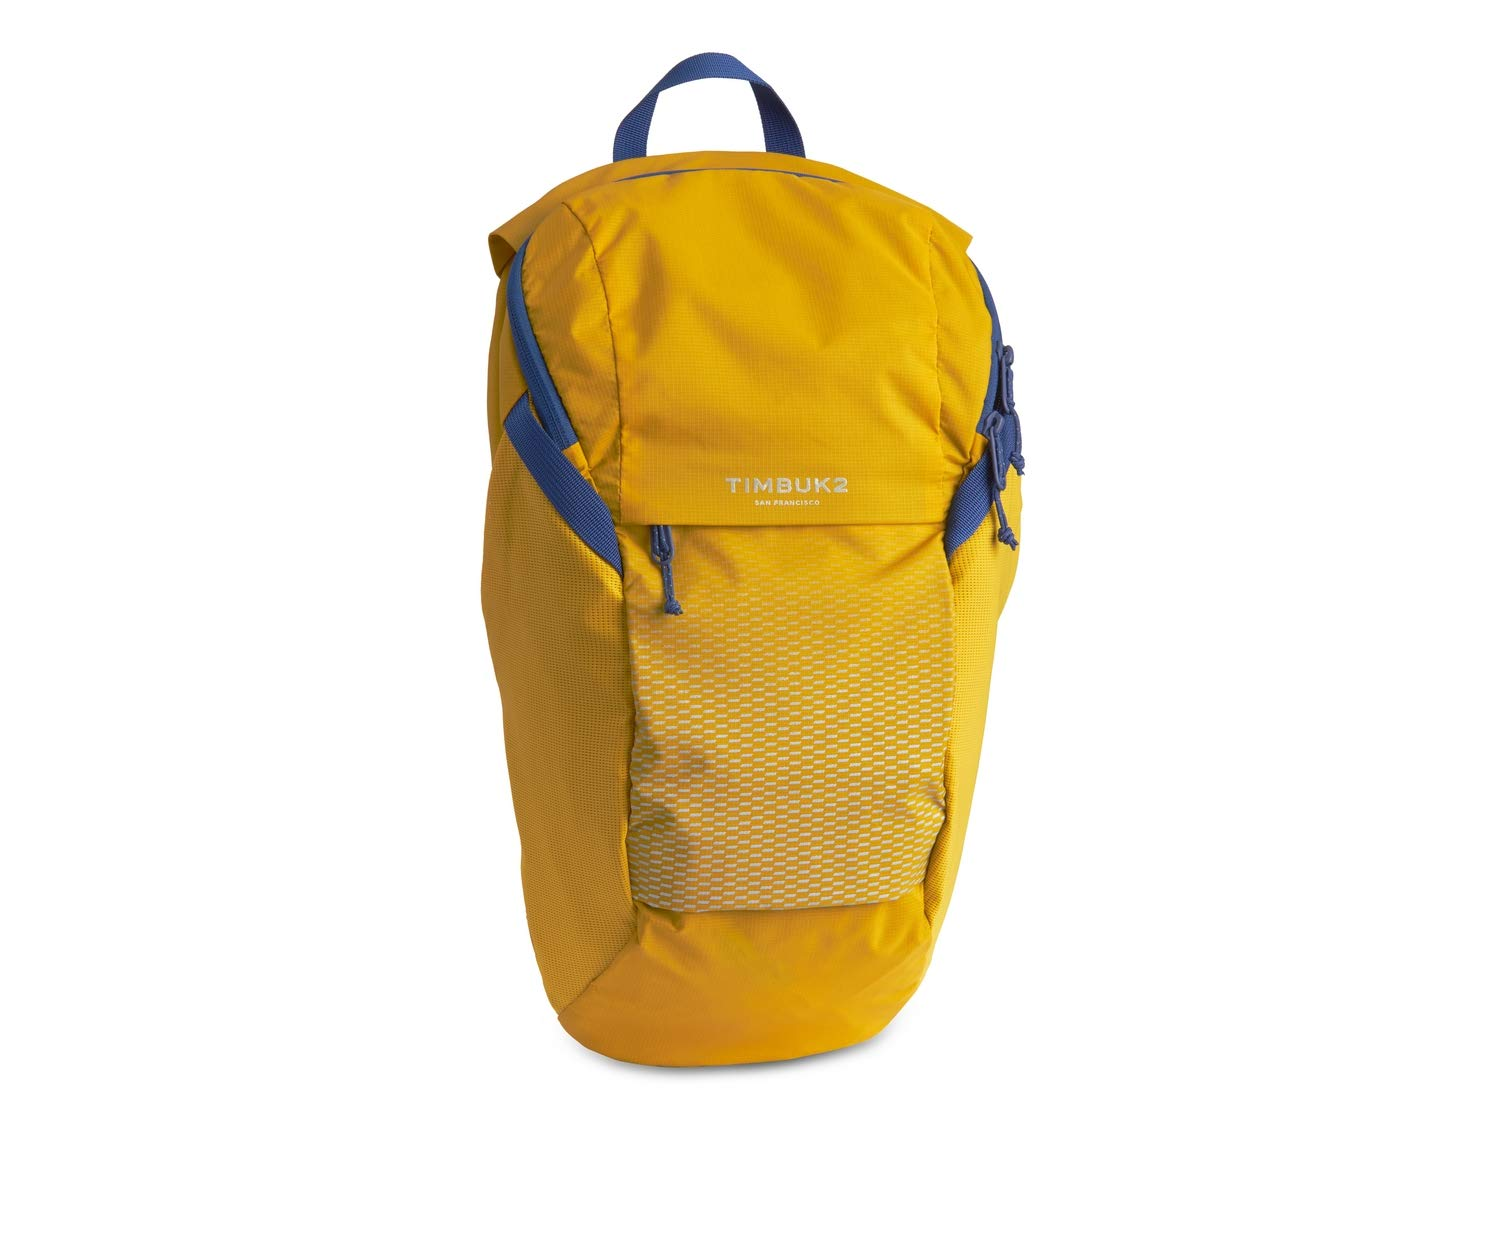 Timbuk2 Rapid Backpack, Golden, One Size by Timbuk2